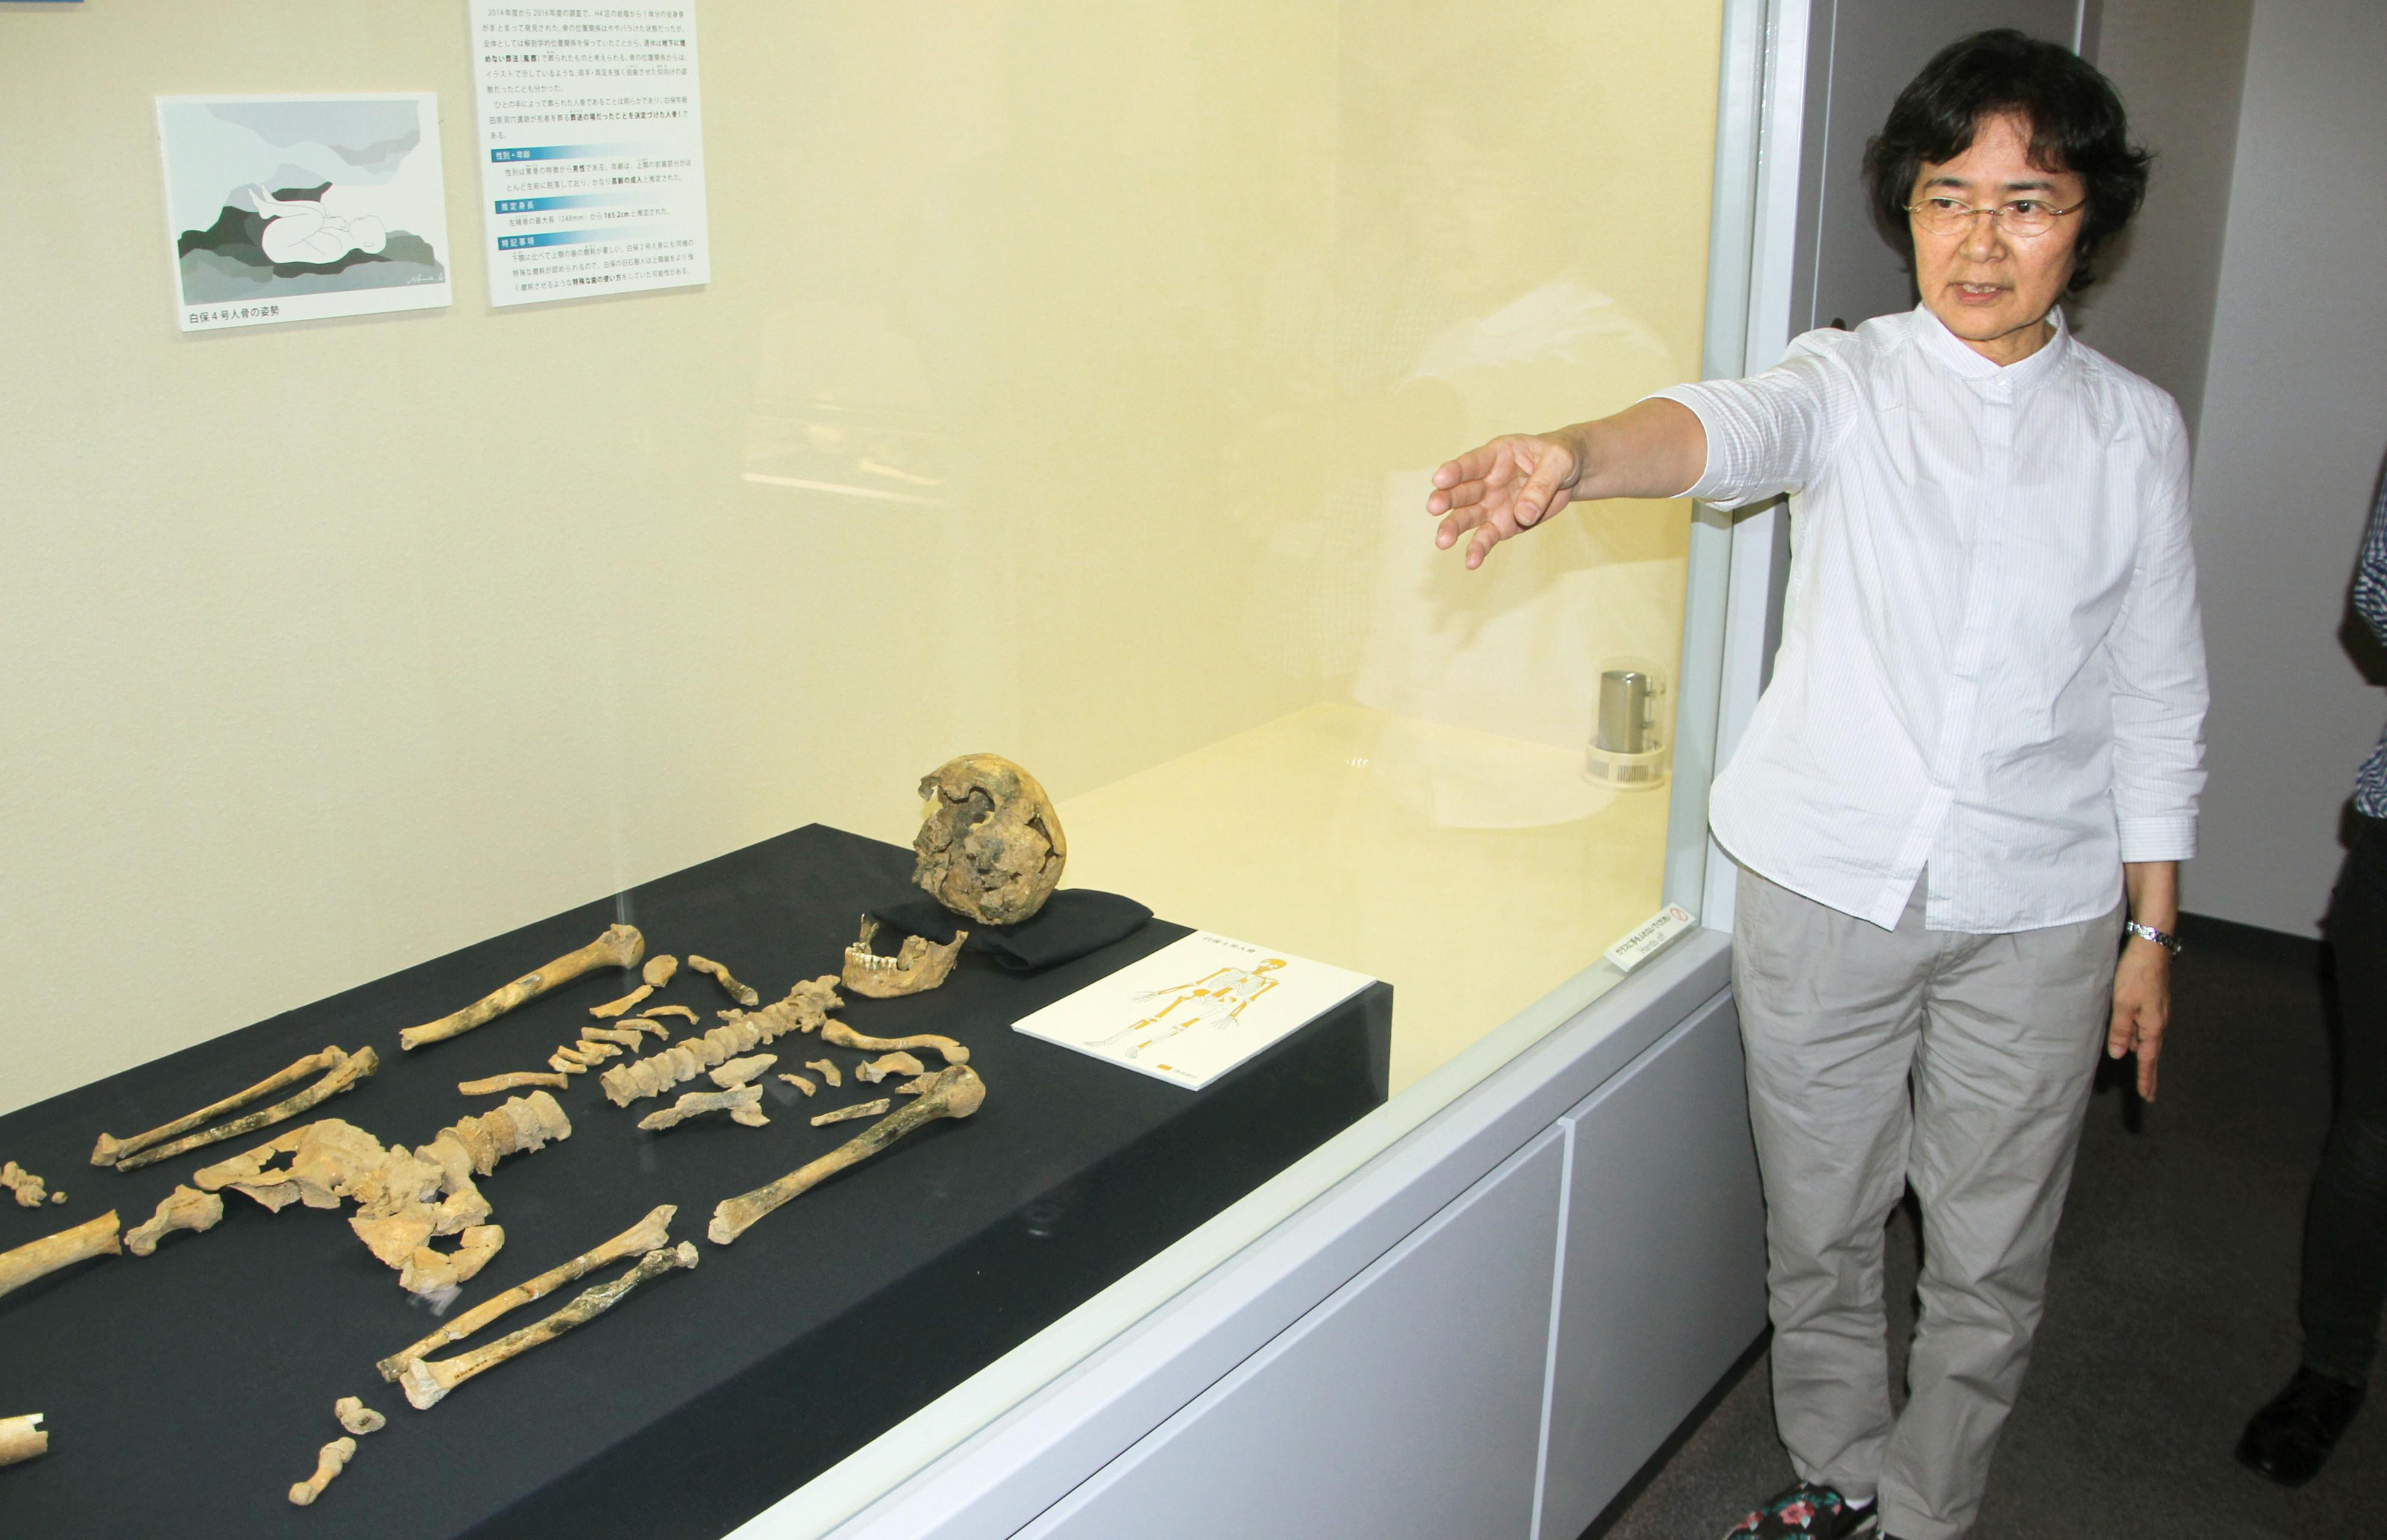 Japan's oldest partial human skeleton found in Okinawa